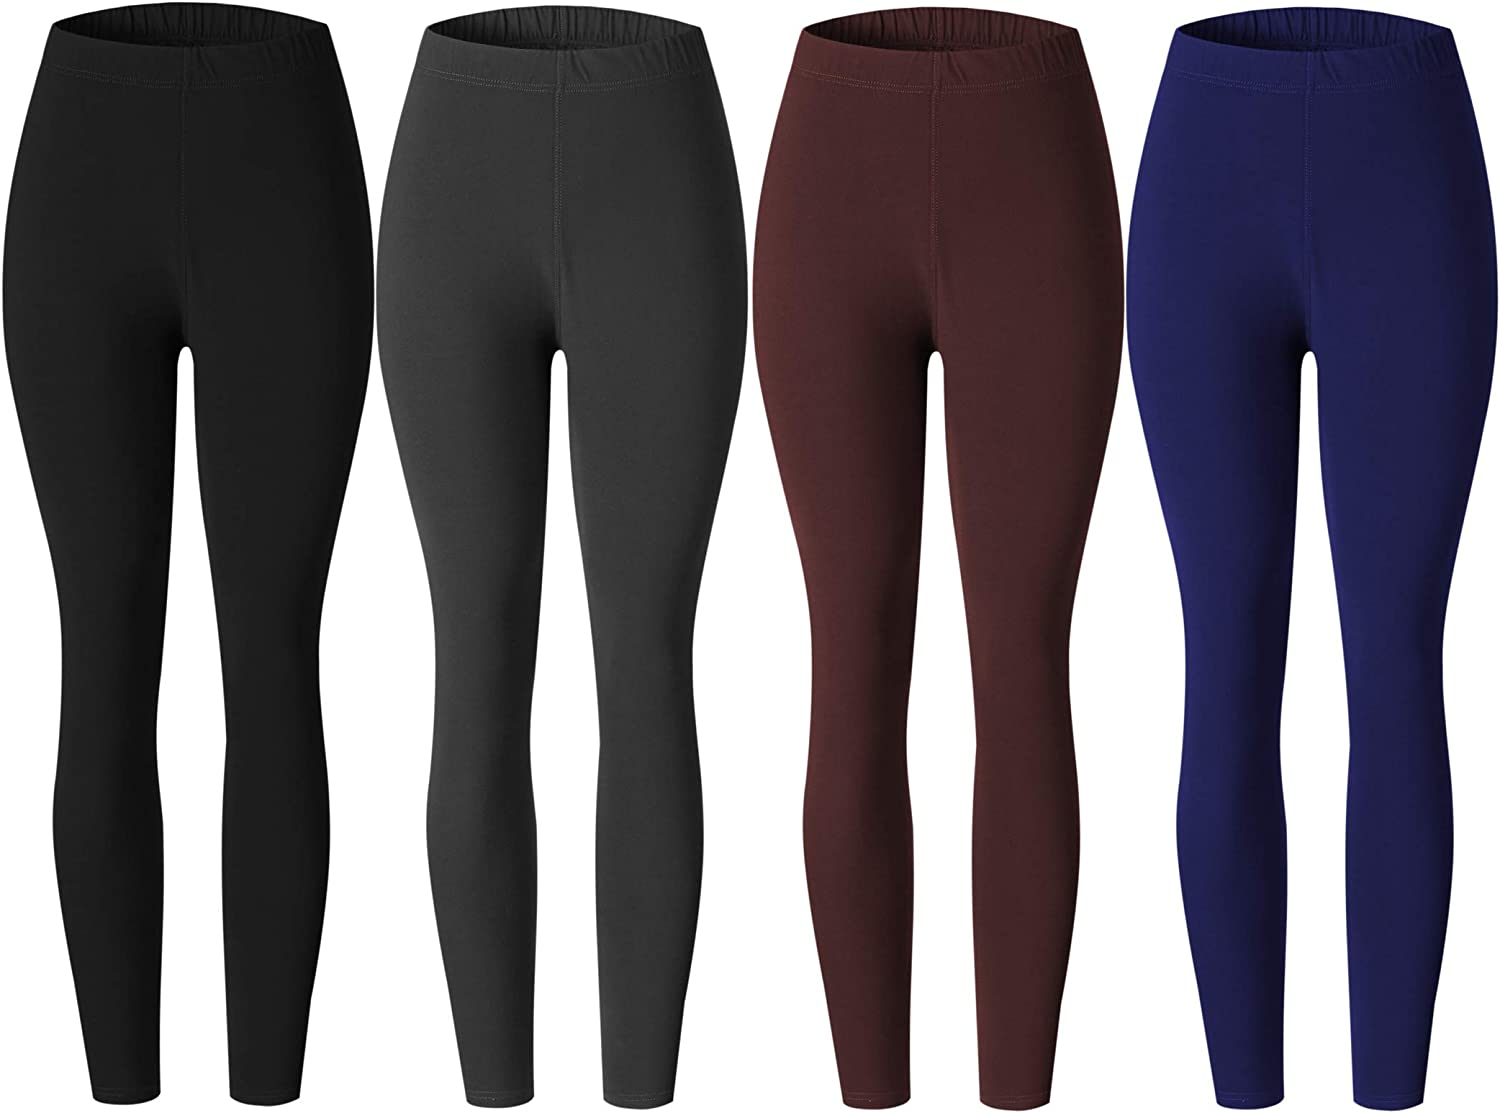 Spandex Butt Lift Ladies Ankle Leggings for Women Buttery Soft Regular and Plus Size